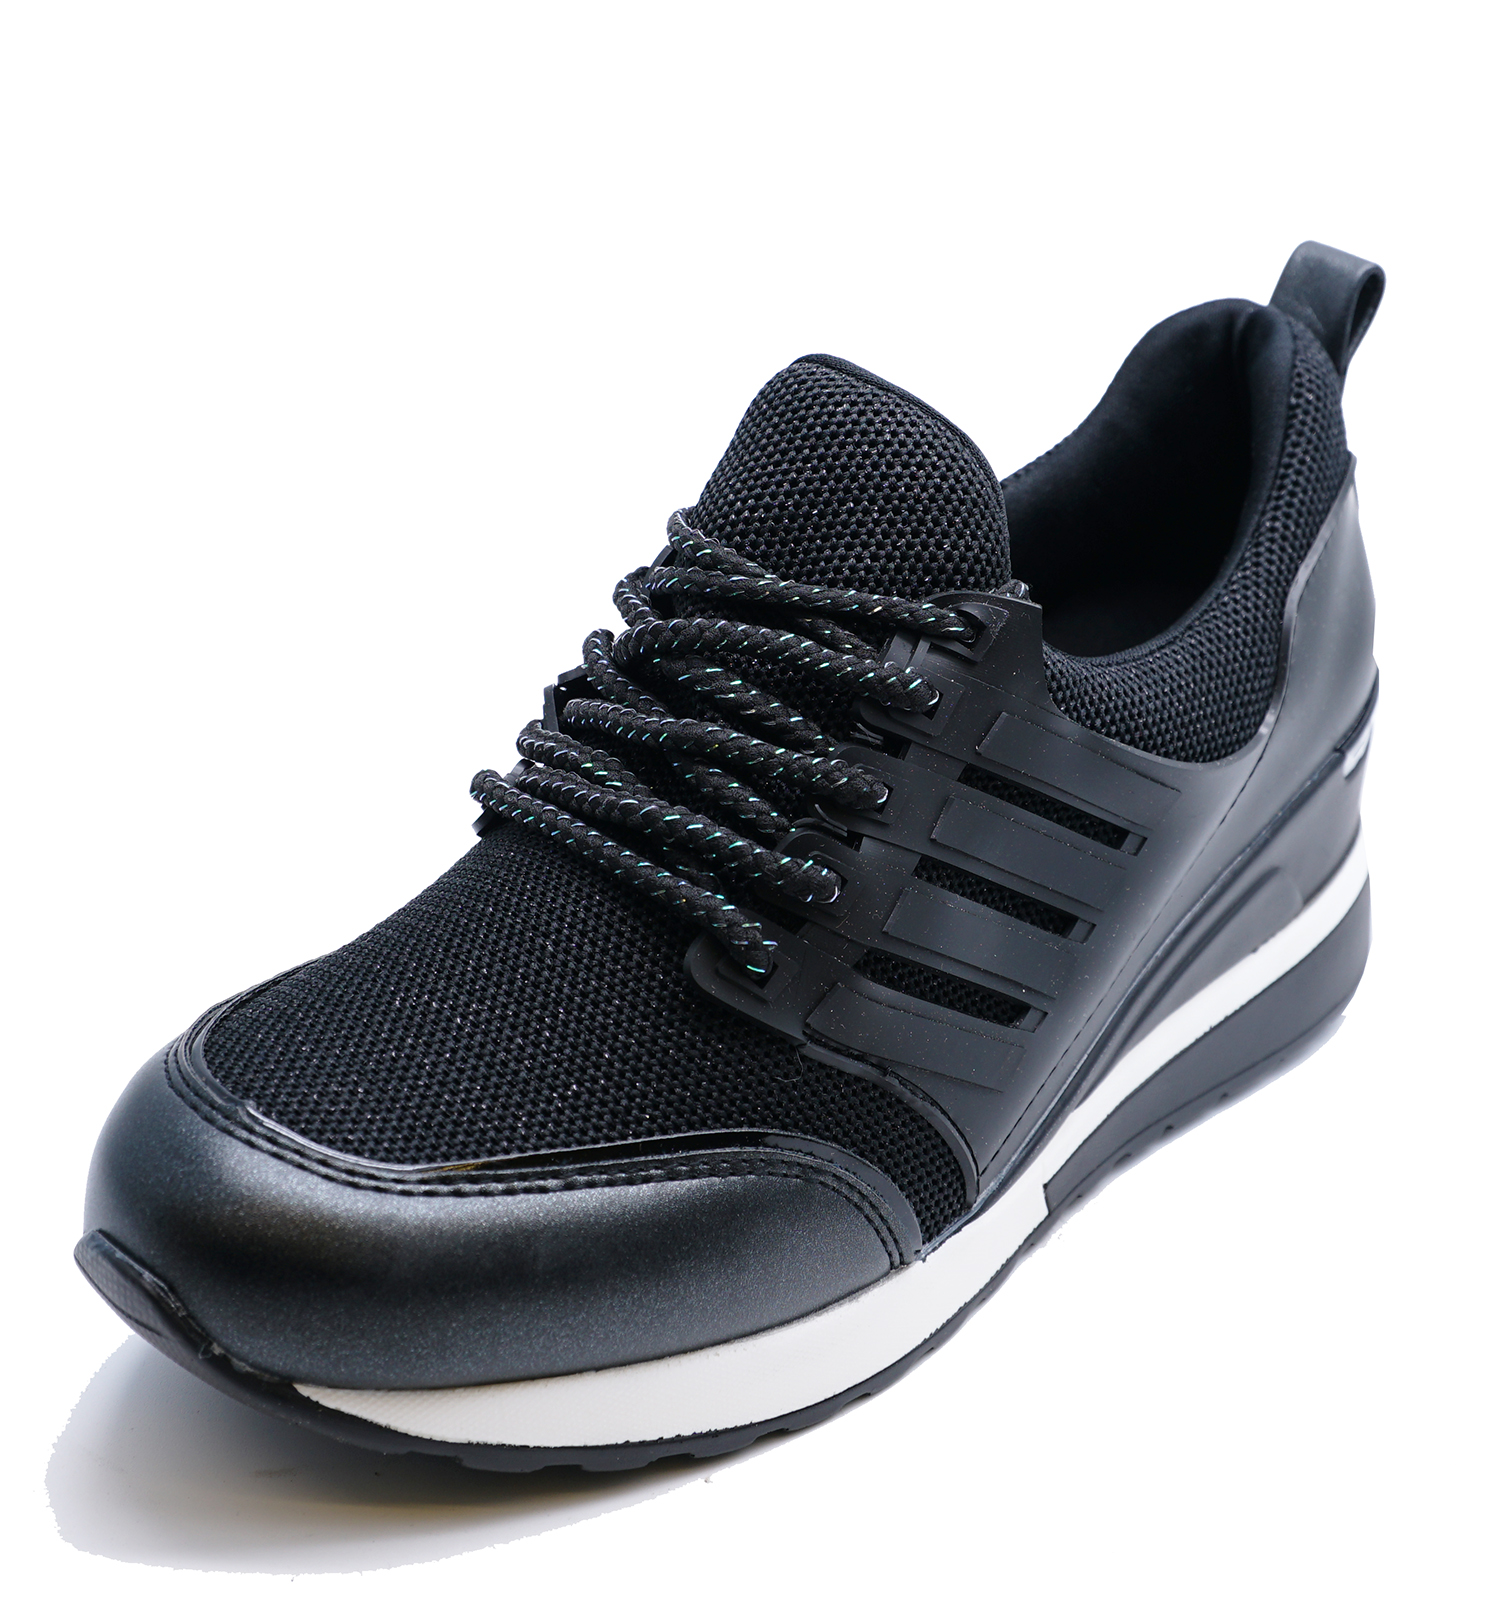 d041e81cf4ae6 Sentinel WOMENS BLACK SLIP-ON RUNNING WEDGE TRAINERS GYM PUMPS PLIMSOLLS  SHOES UK 3-8